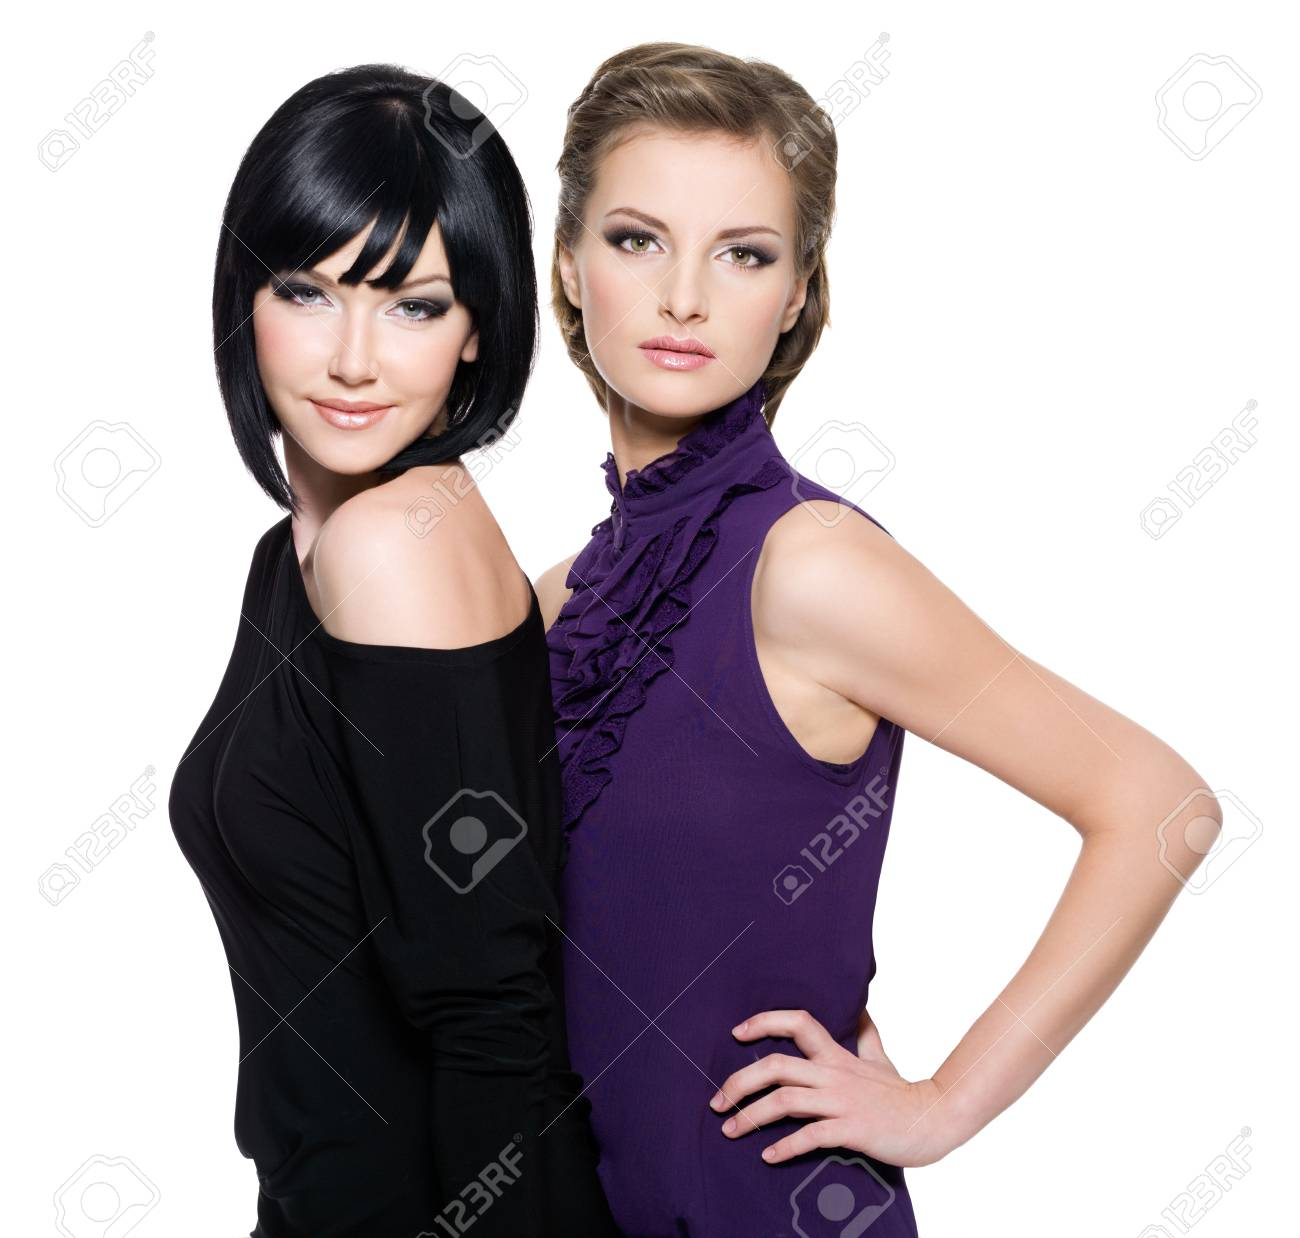 Two beautiful  glamour women standing together over white background Stock Photo - 8440501